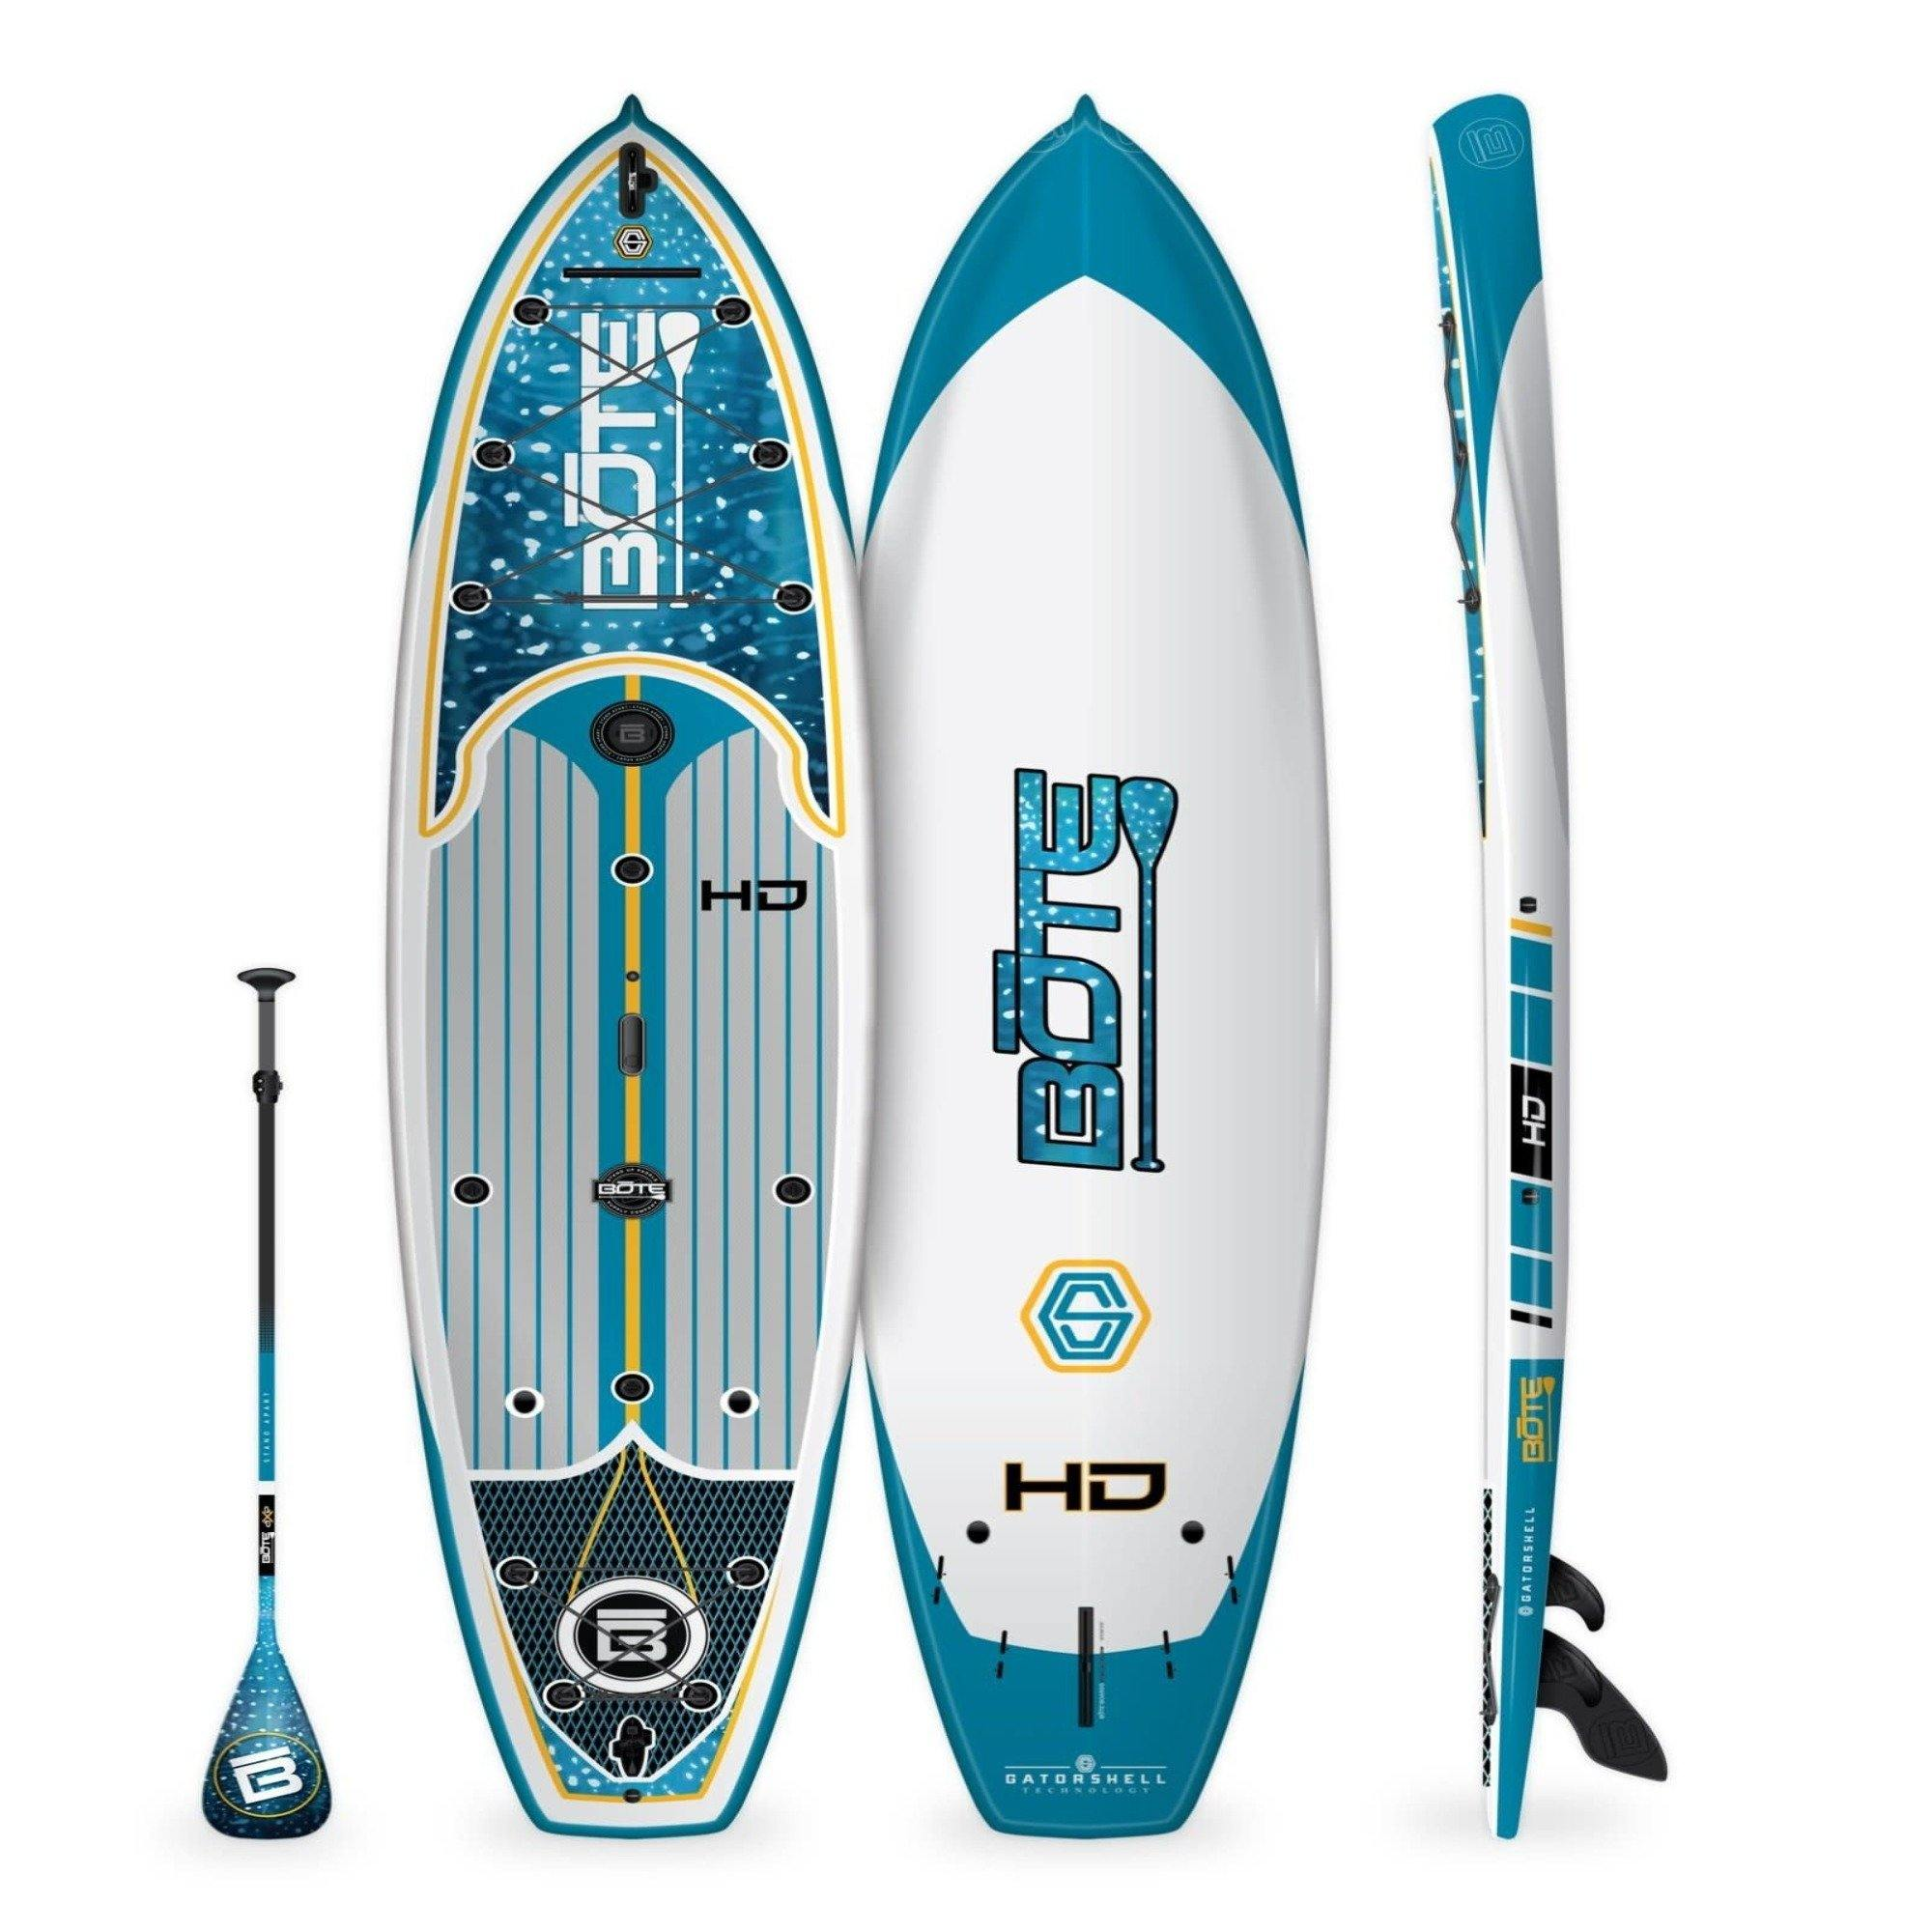 "HD Aero Inflatable Paddle Board 11'6"" / Native Whale Shark"